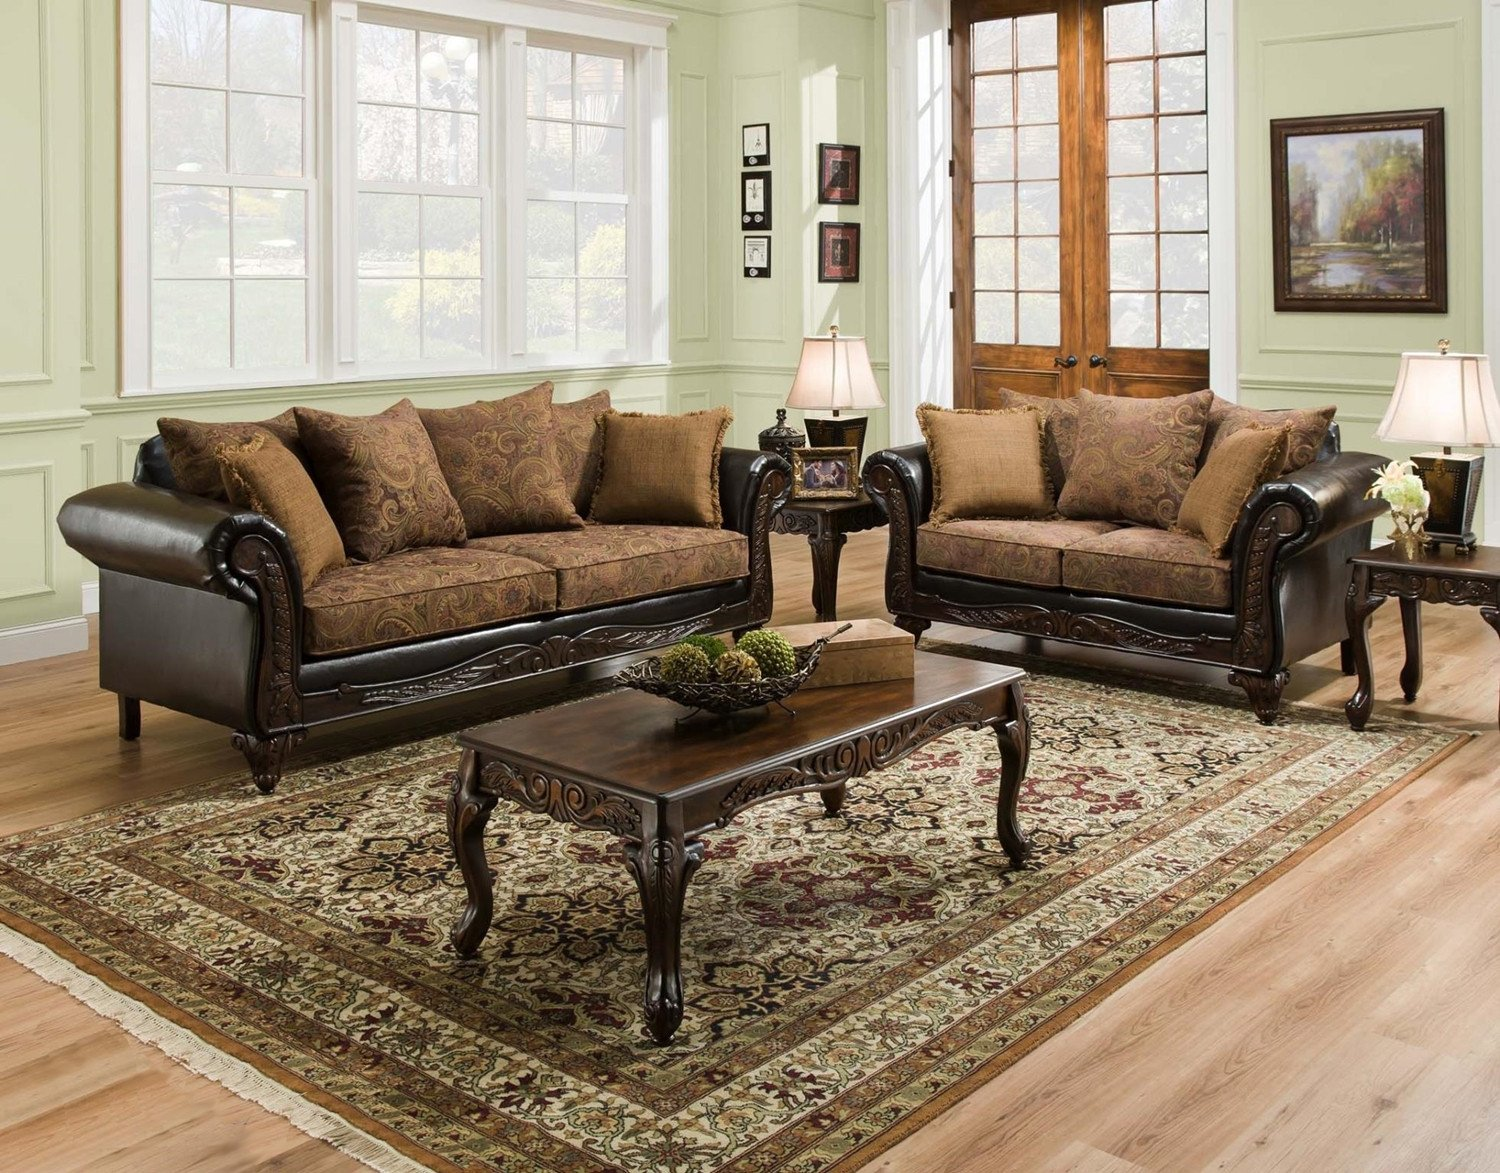 Traditional Living Room Sets San Marino Traditional Living Room Furniture Set W Wood